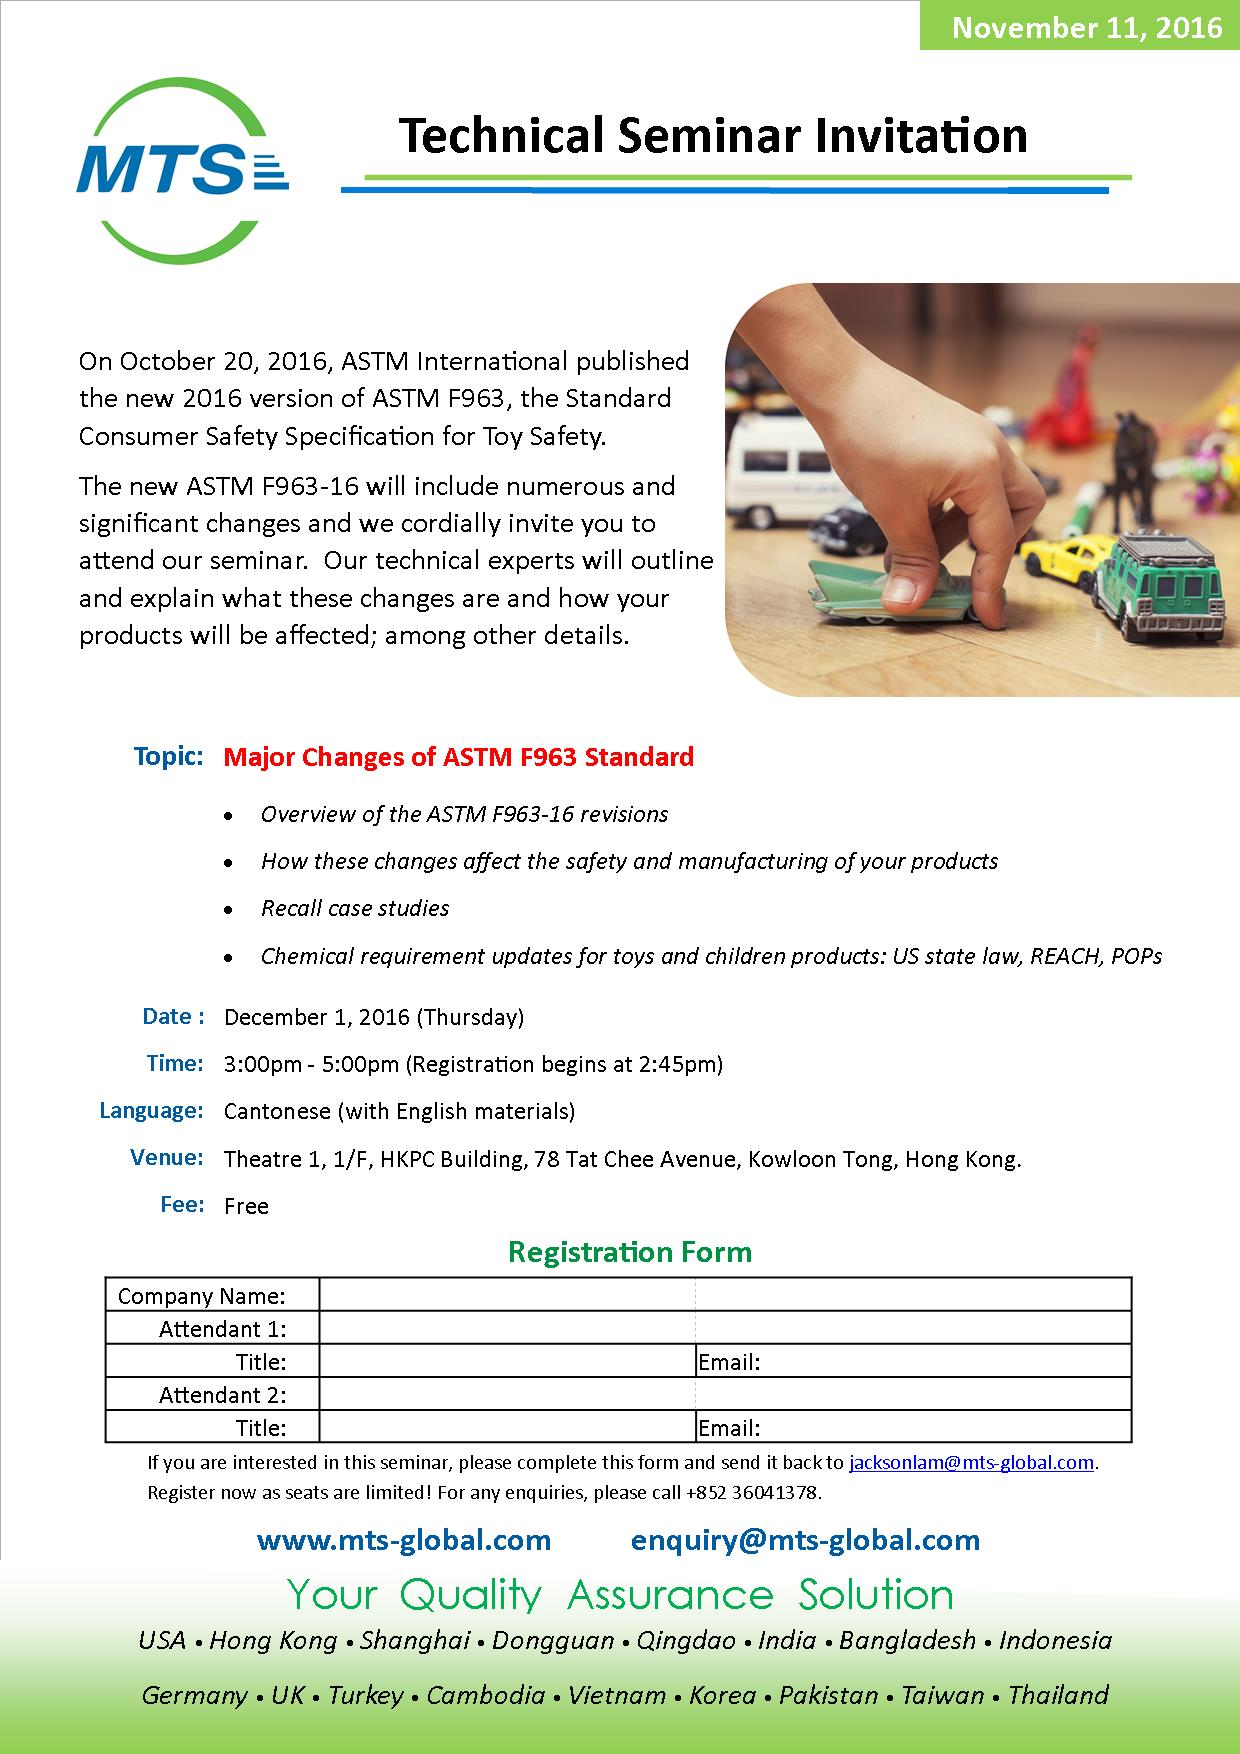 ASTM F-963 Seminar Registration Form